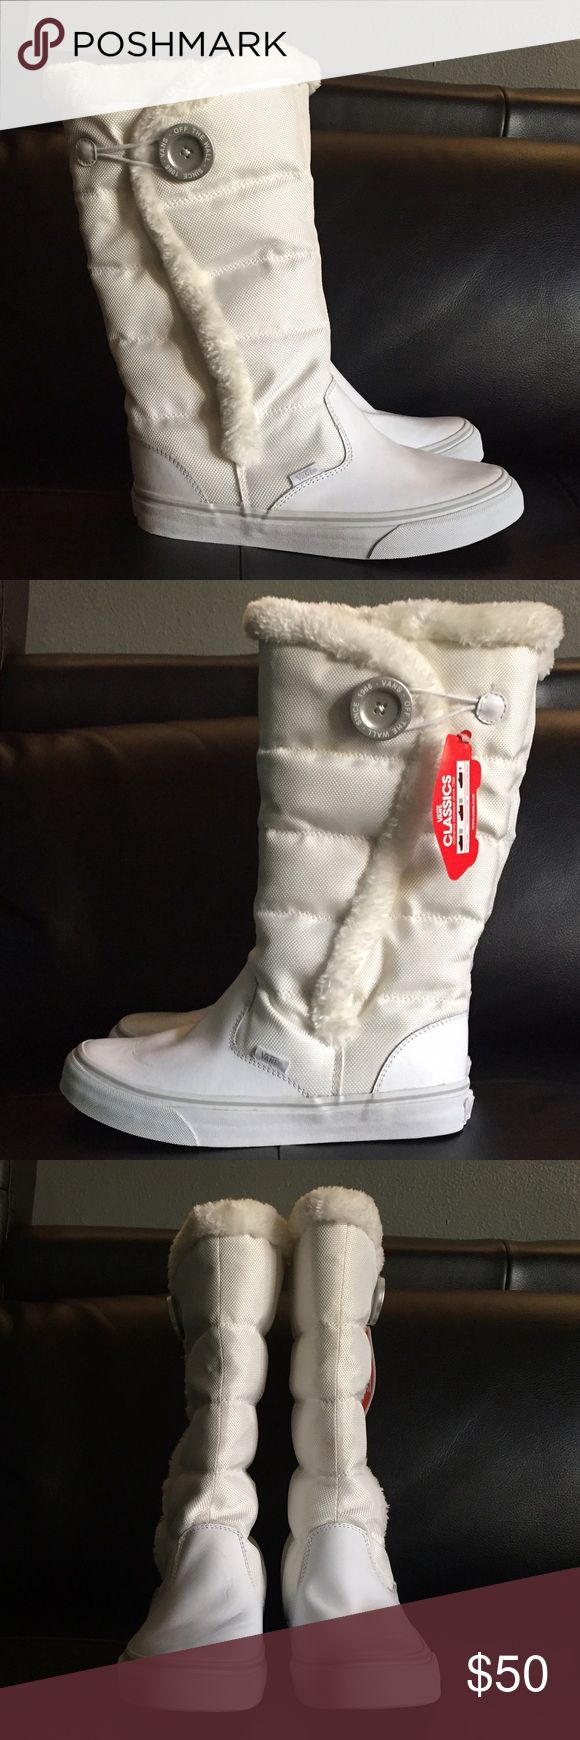 White Vans Boots With Fur Lining White Vans Boots with Fur Lining and Button Closure Women's Size 8 / Men's Size 6.5 Feel Free to Make an Offer! Vans Shoes Winter & Rain Boots